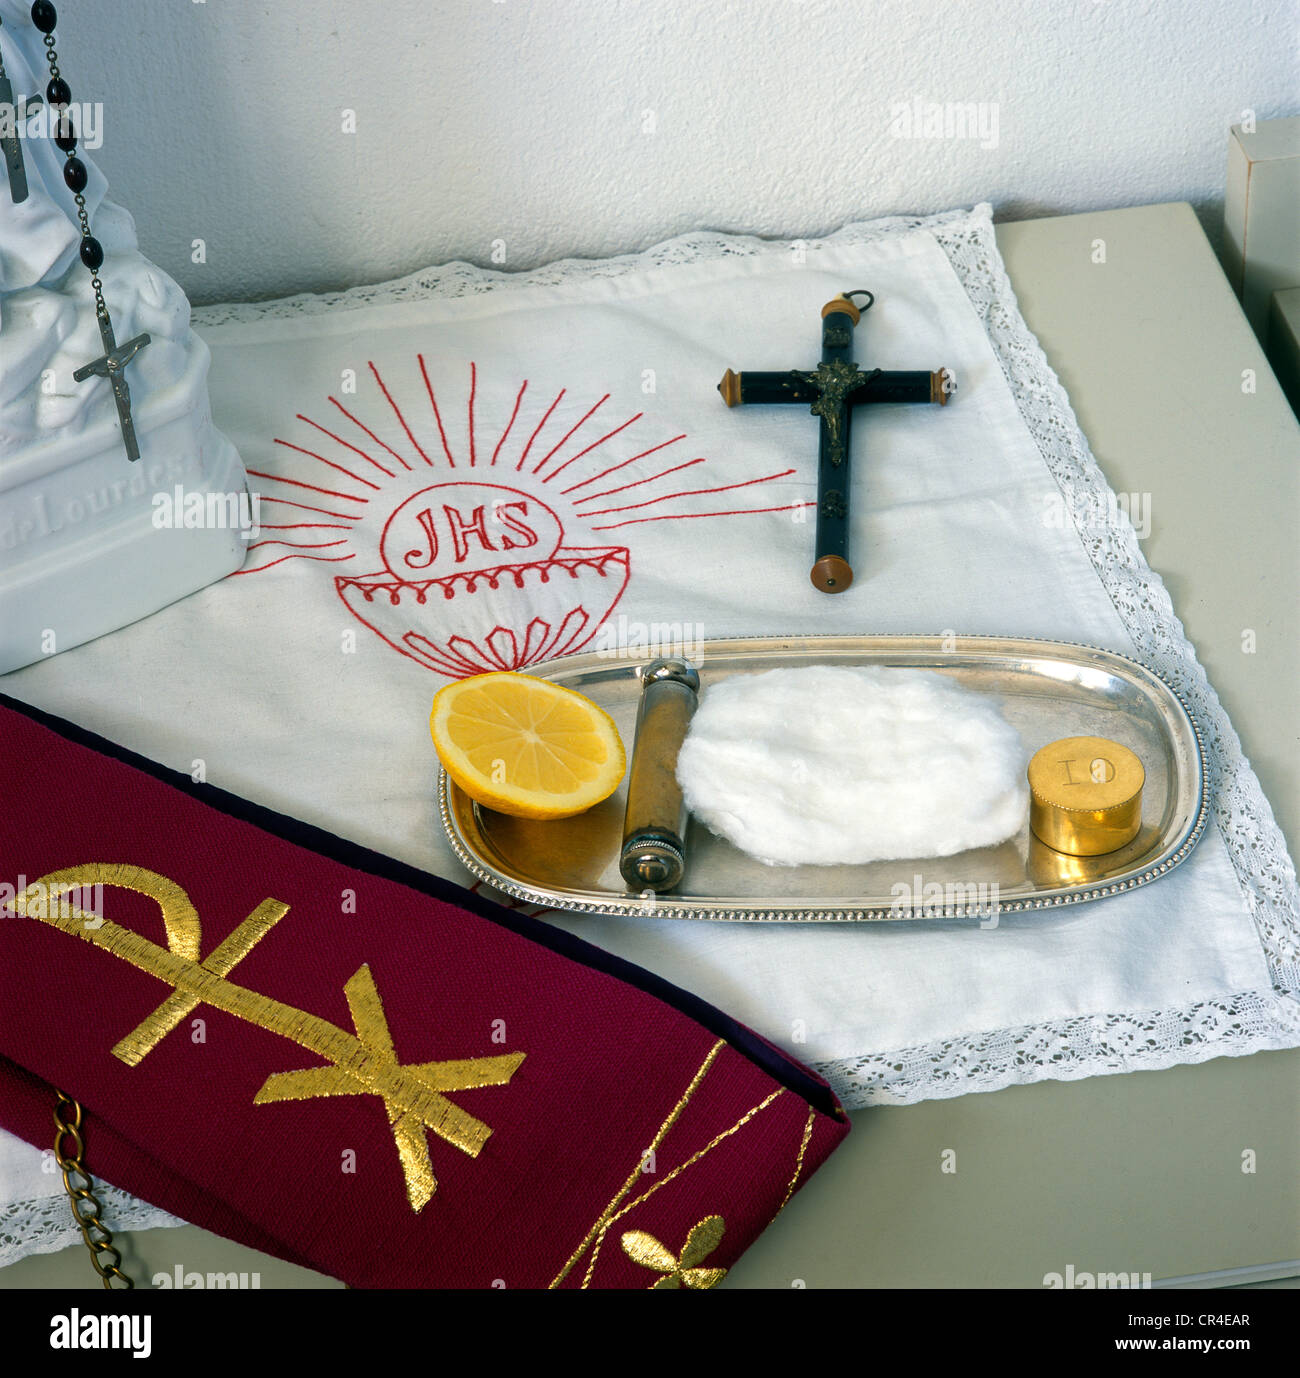 Utensils for the anointing of the sick, Pyxis, holy water sprinkler, cotton, cross, stole - Stock Image